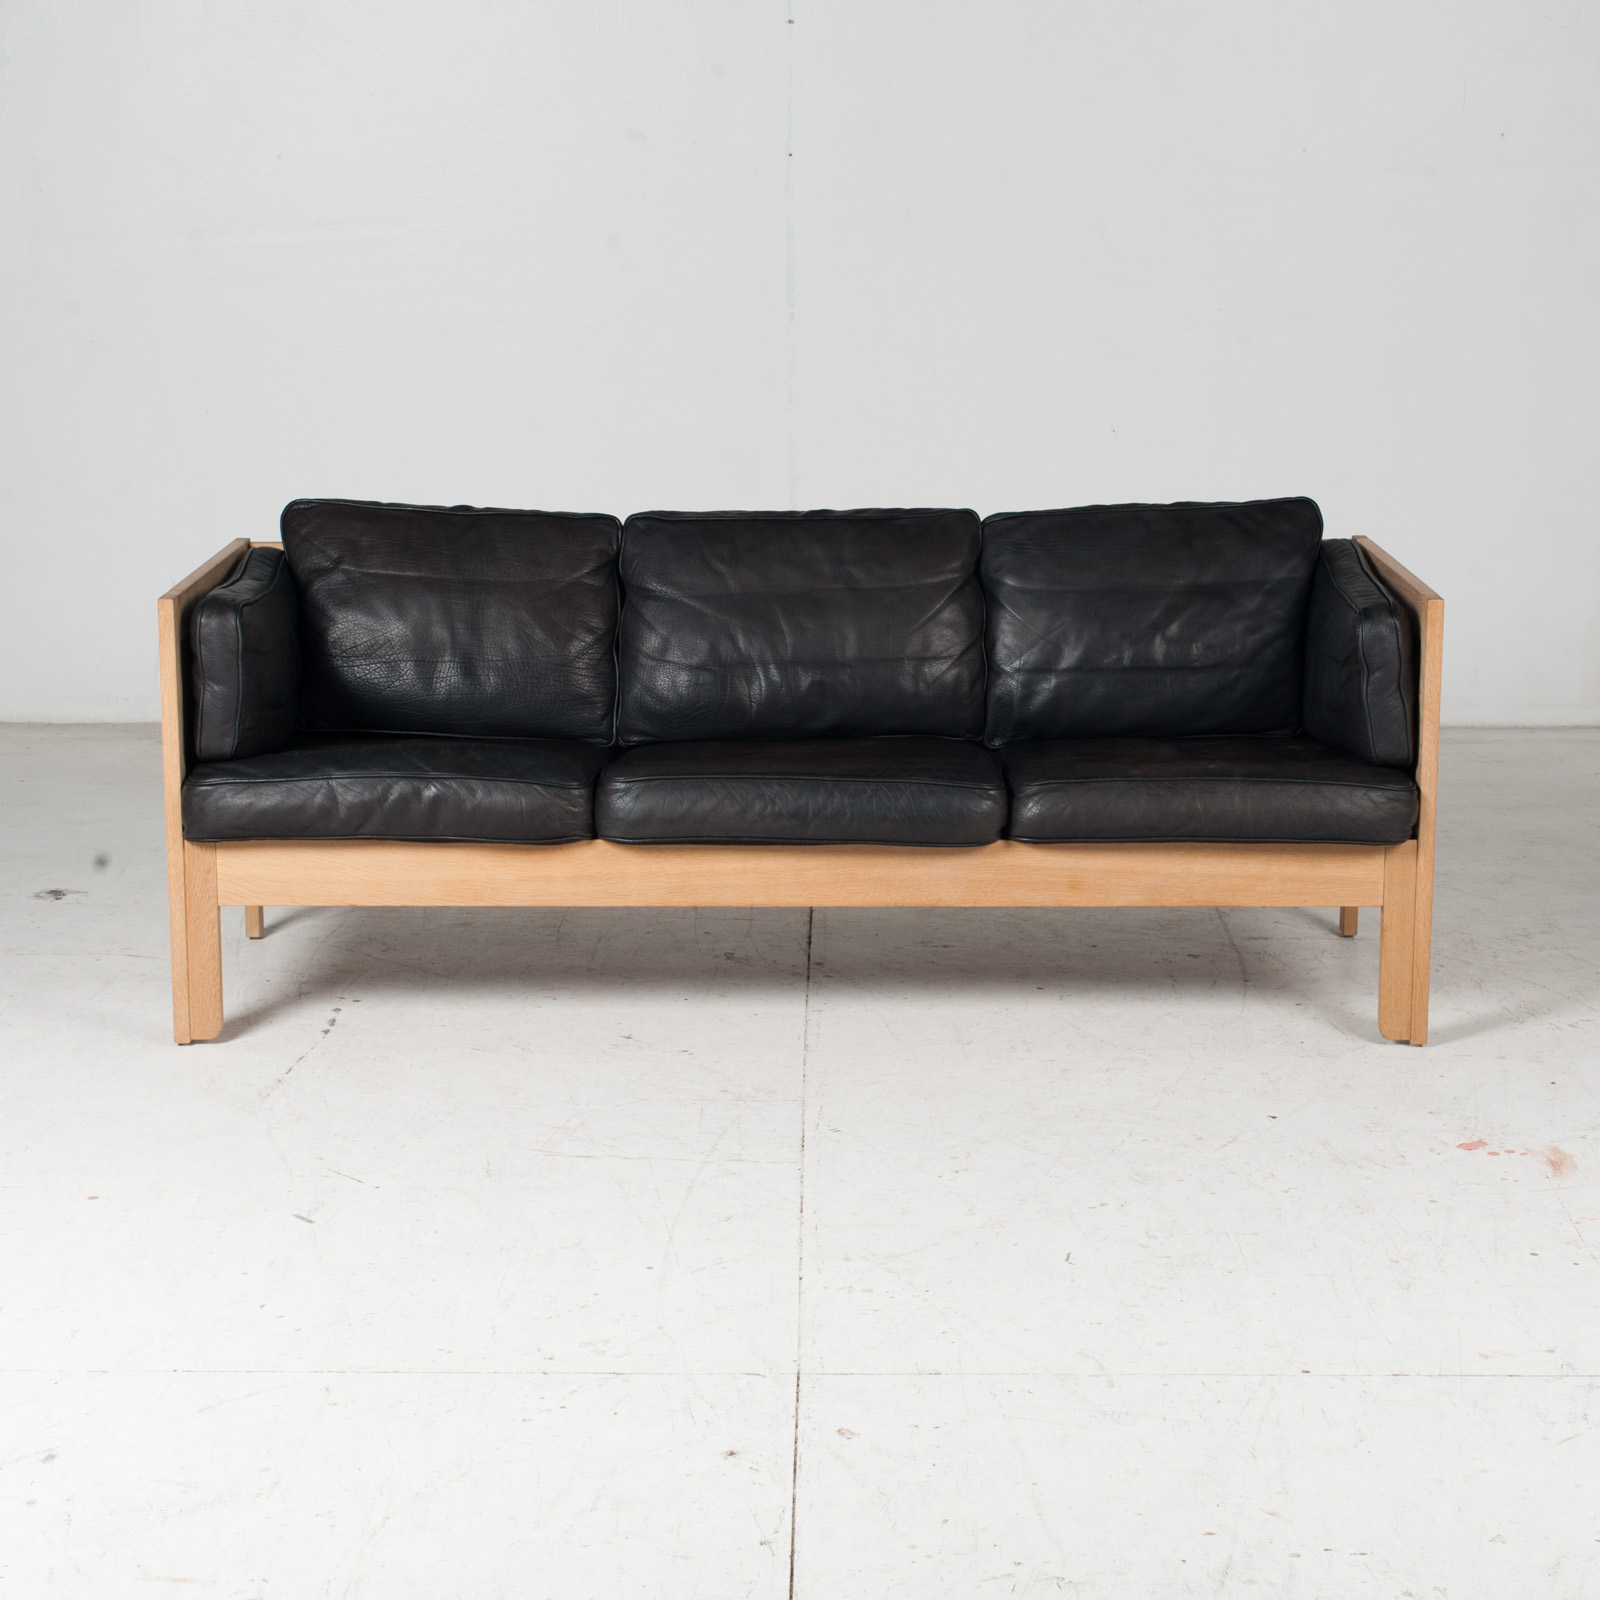 3 Seat Sofa By Borge Mogensen For Frederica In Black Leather And Oak, 1960s, Denmark 2